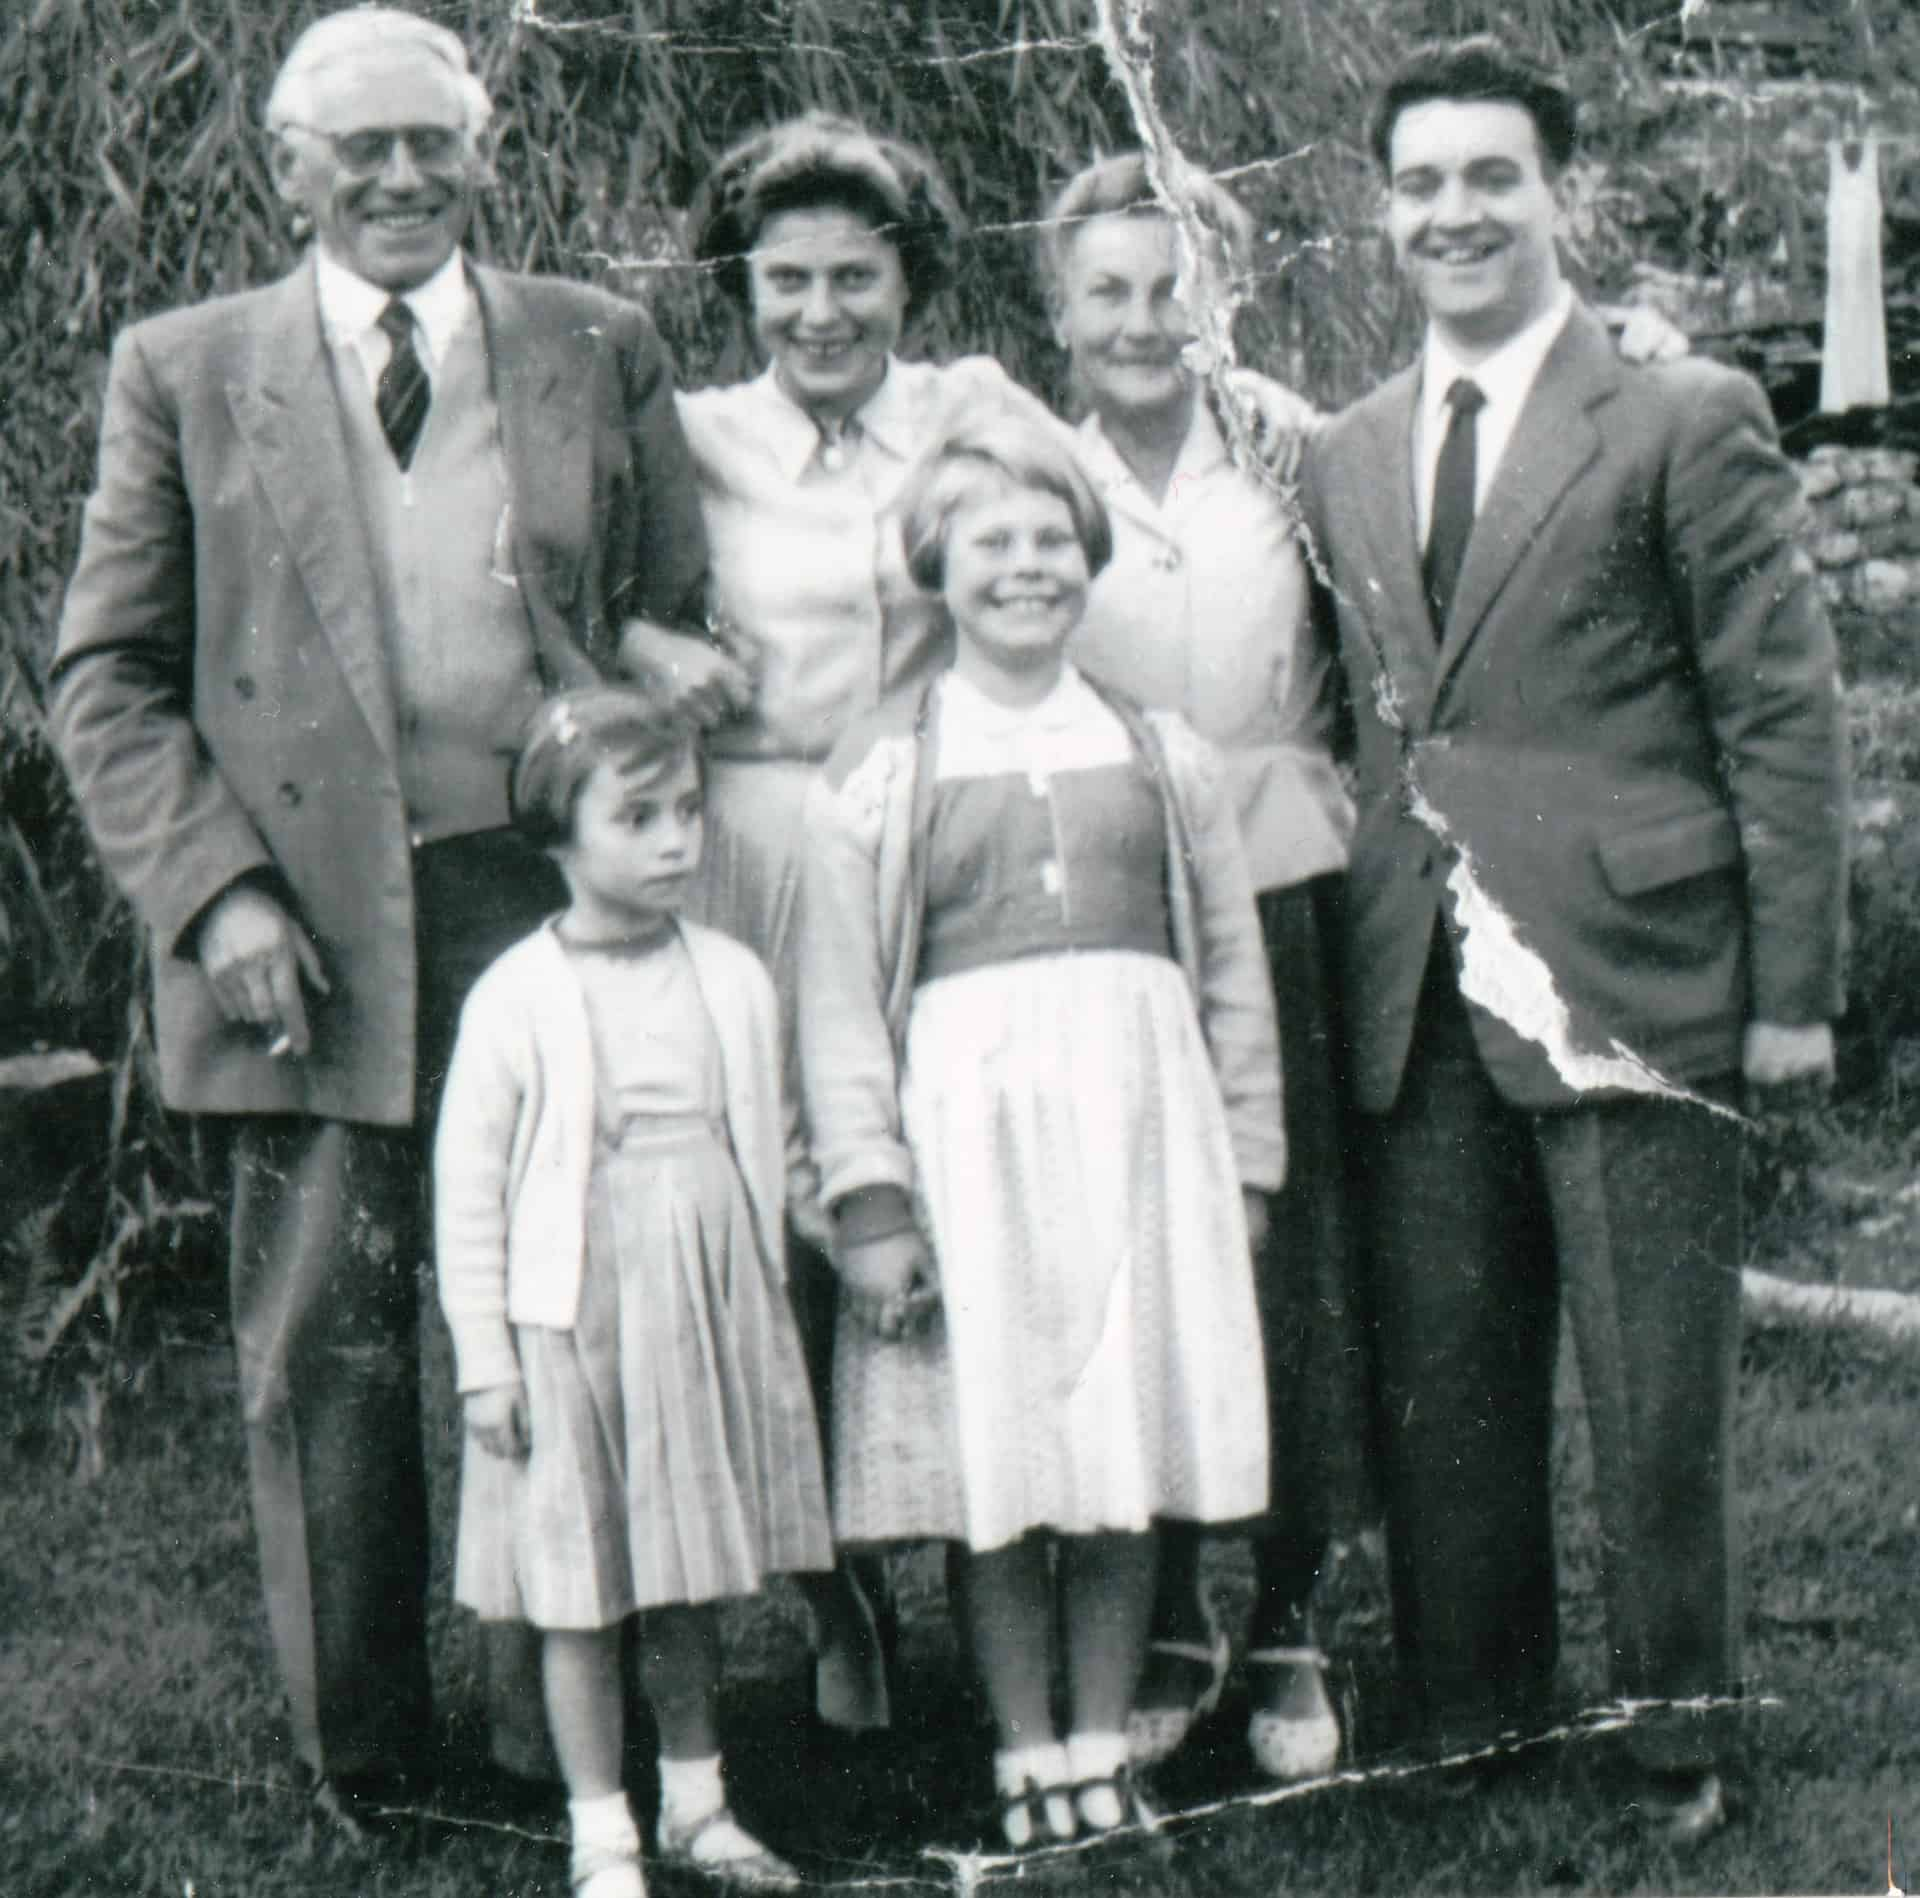 Jackie (front) with her German grandparents, sister, and mum and dad taken about 1955